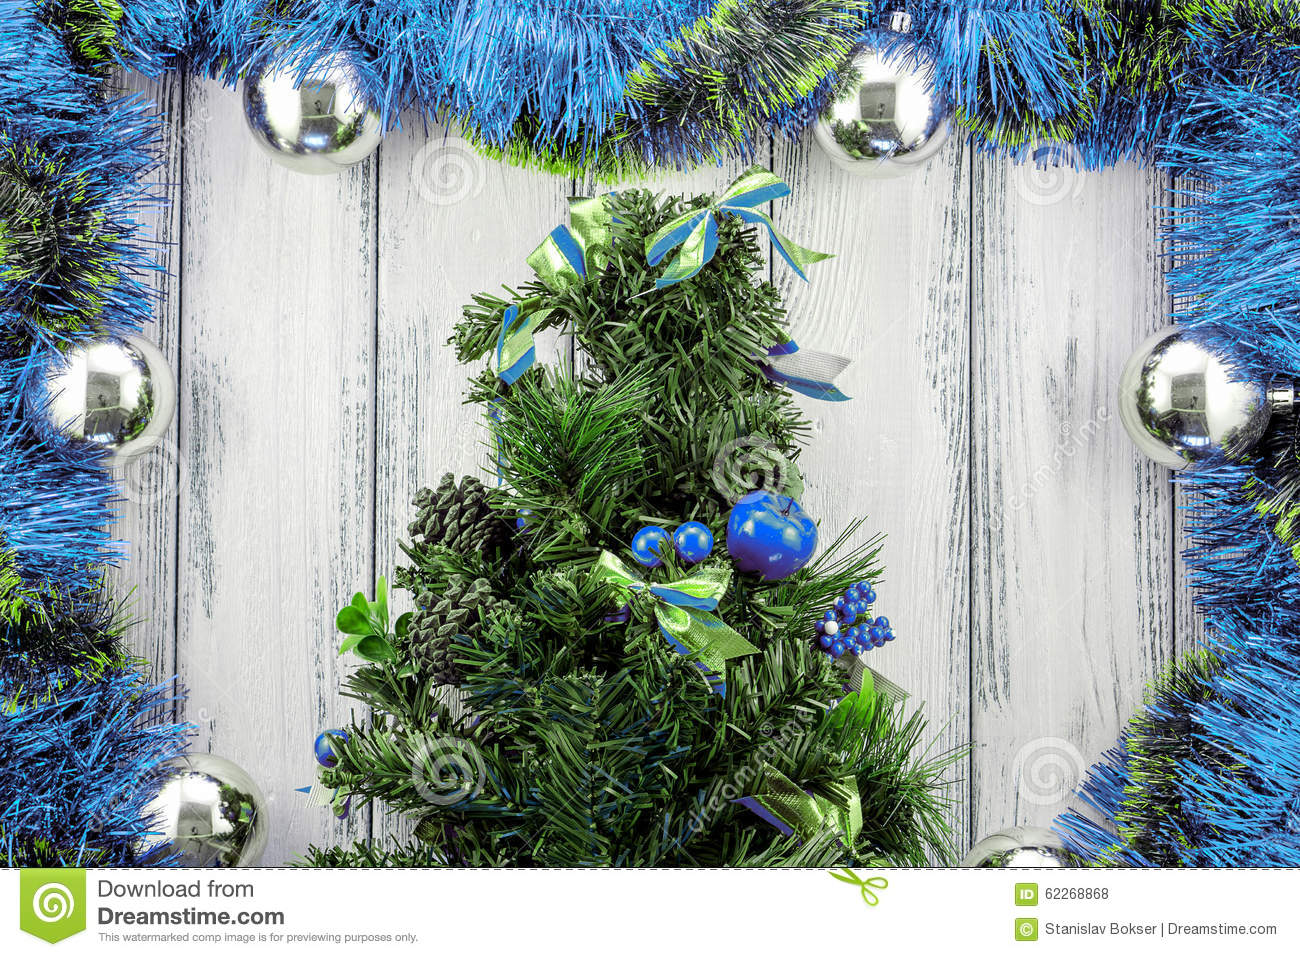 new year theme christmas tree with blue and green decoration and silver balls on white stylized wood background - Green Christmas Tree With Blue Decorations